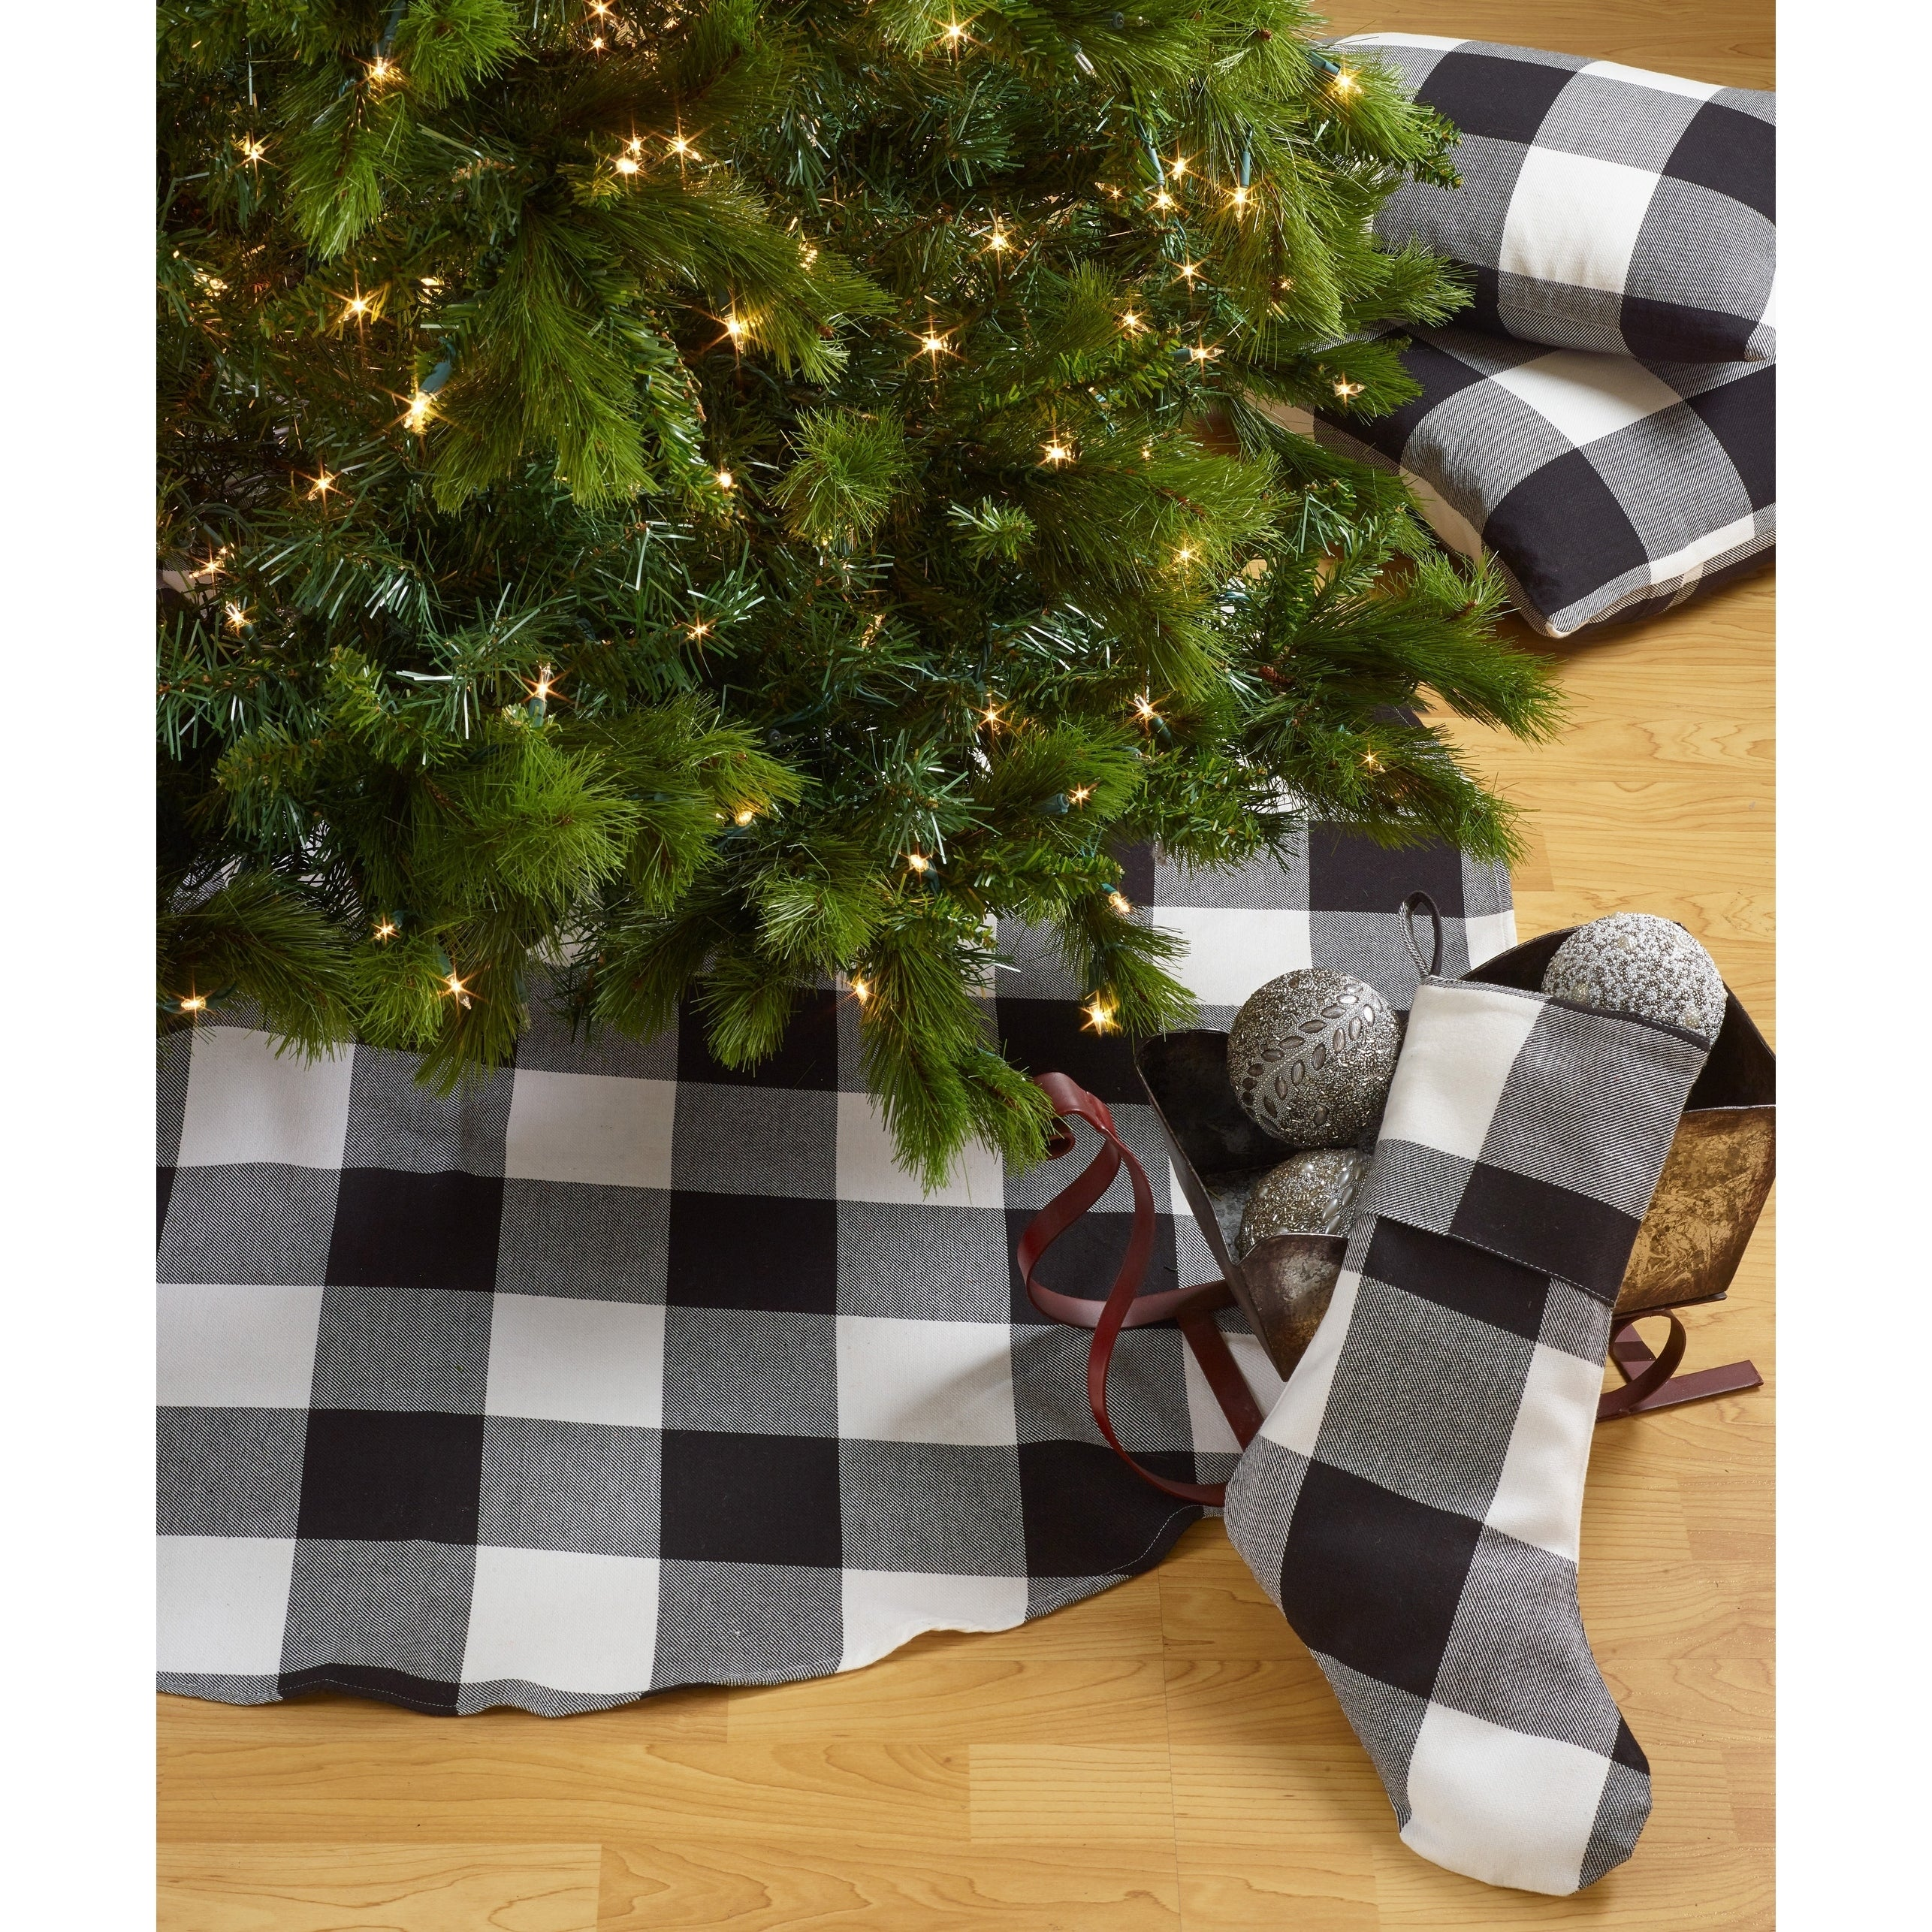 Buffalo Plaid Design Decorative Cotton Christmas Tree Skirt Overstock 17415350